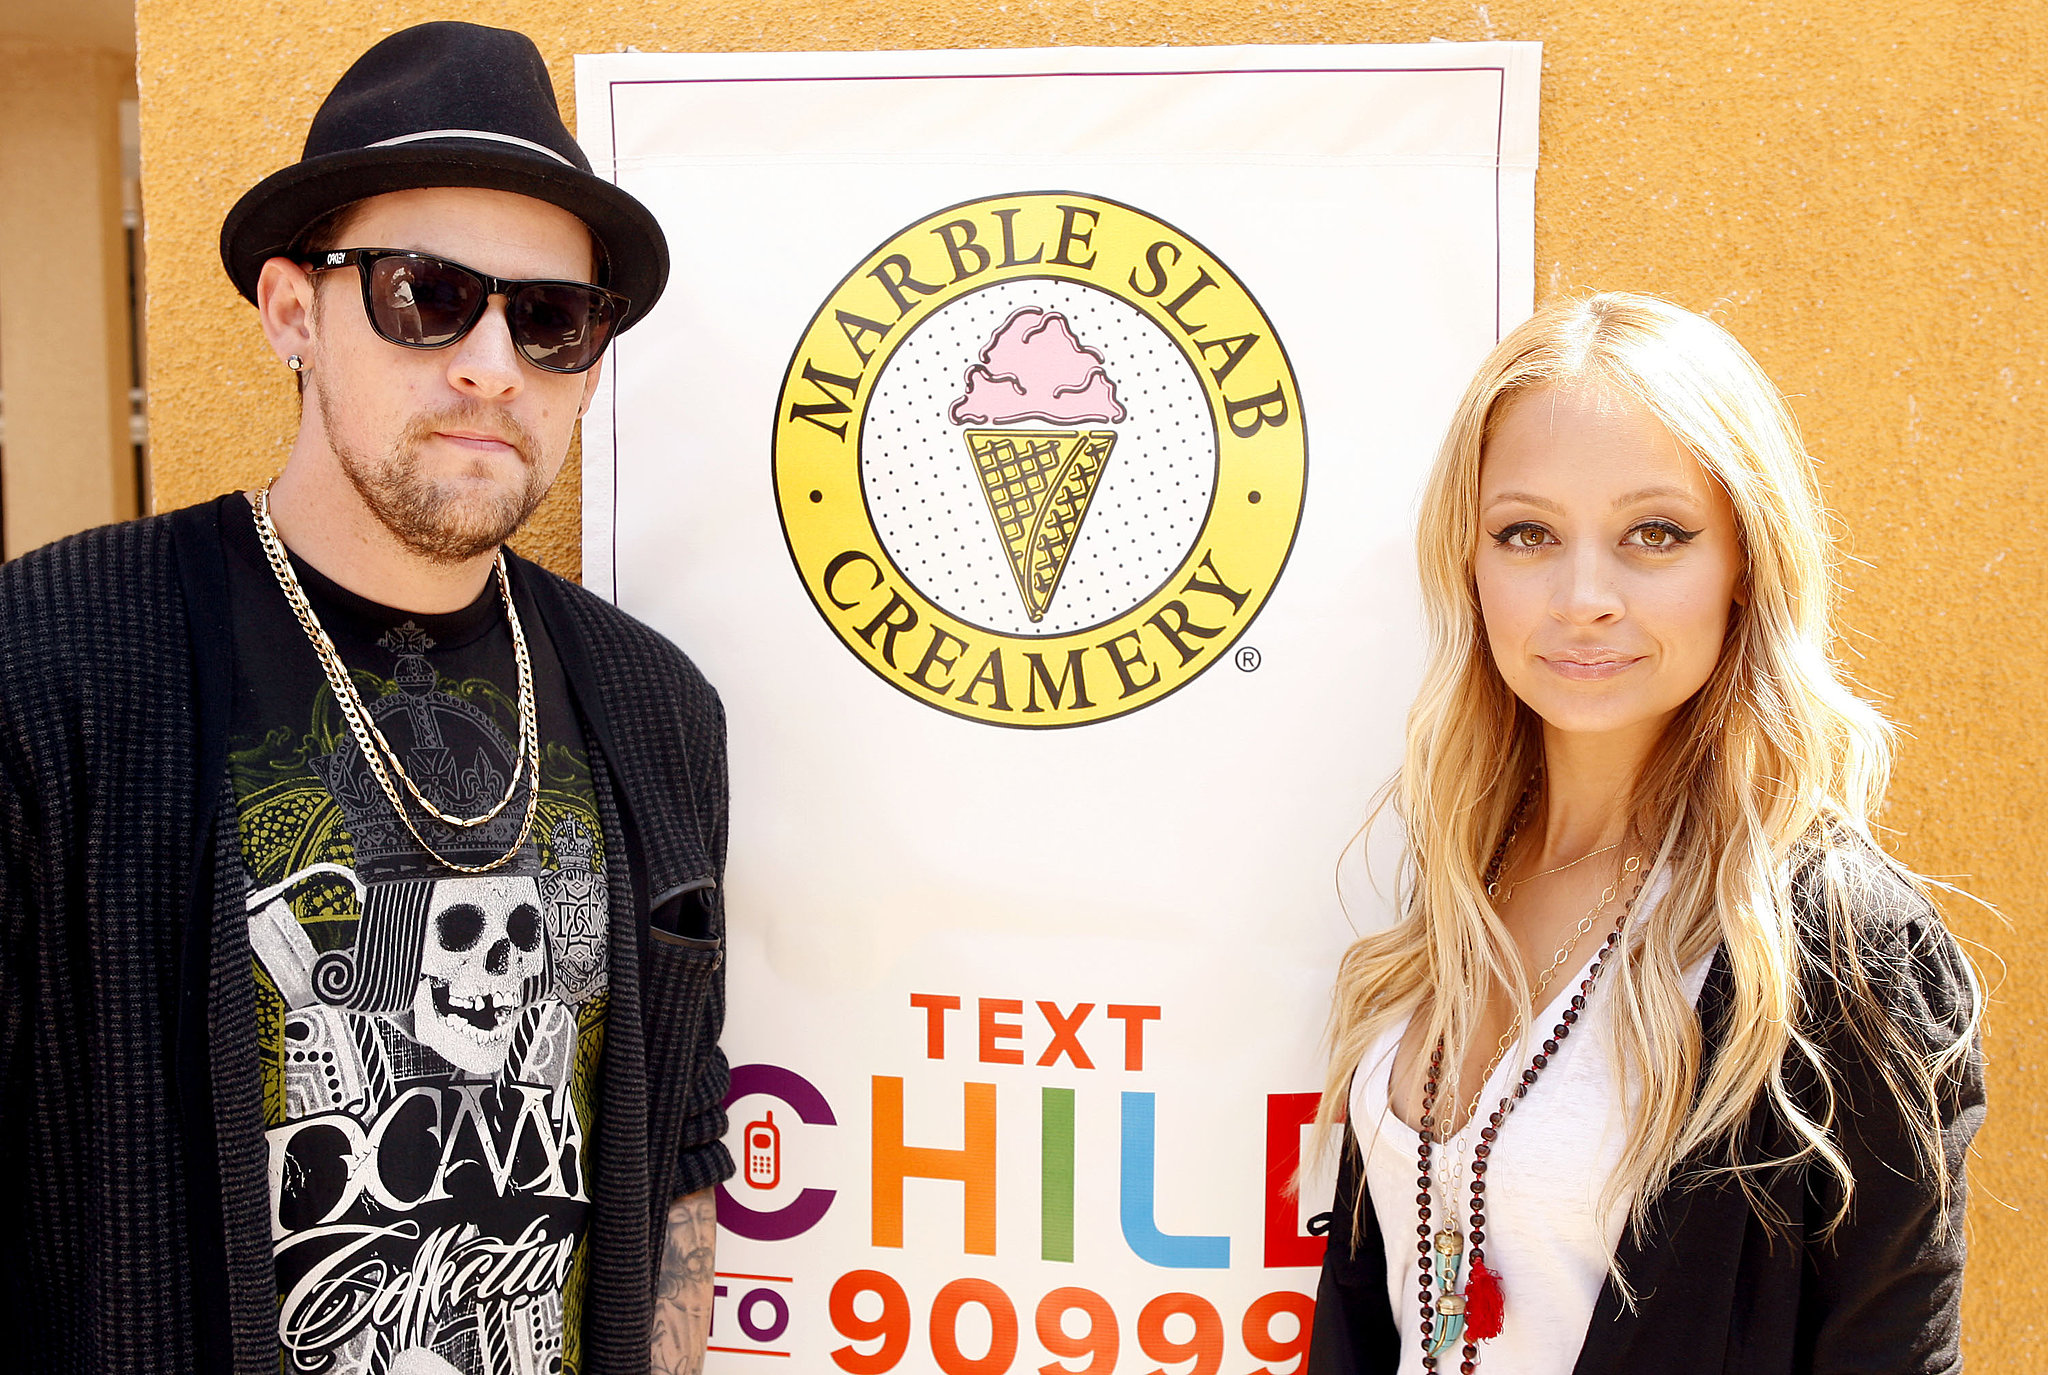 Nicole and Joel launched another children's charity initiative together in September 2008.